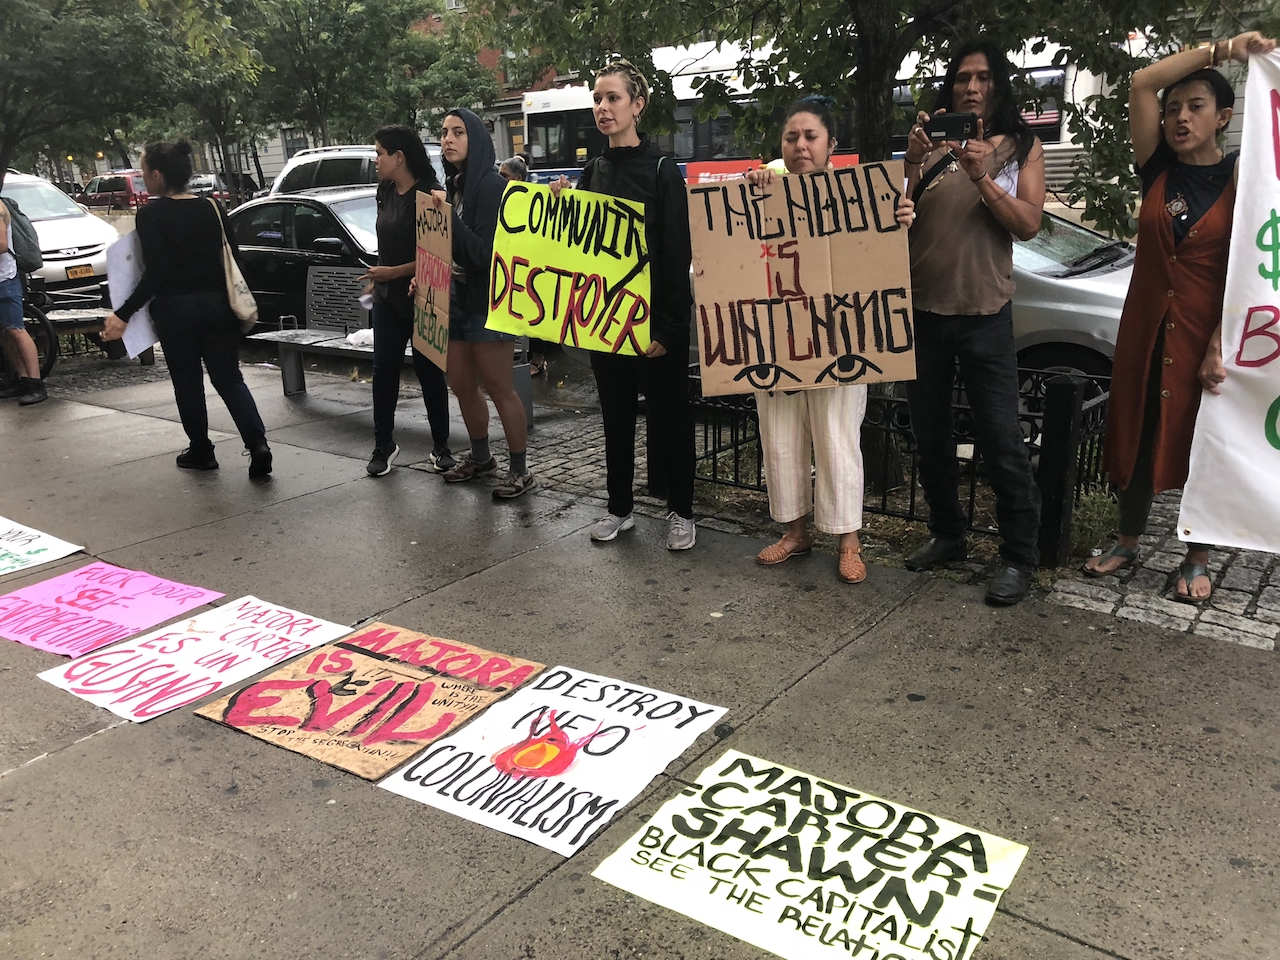 Public discussion over community land trusts sparks protest